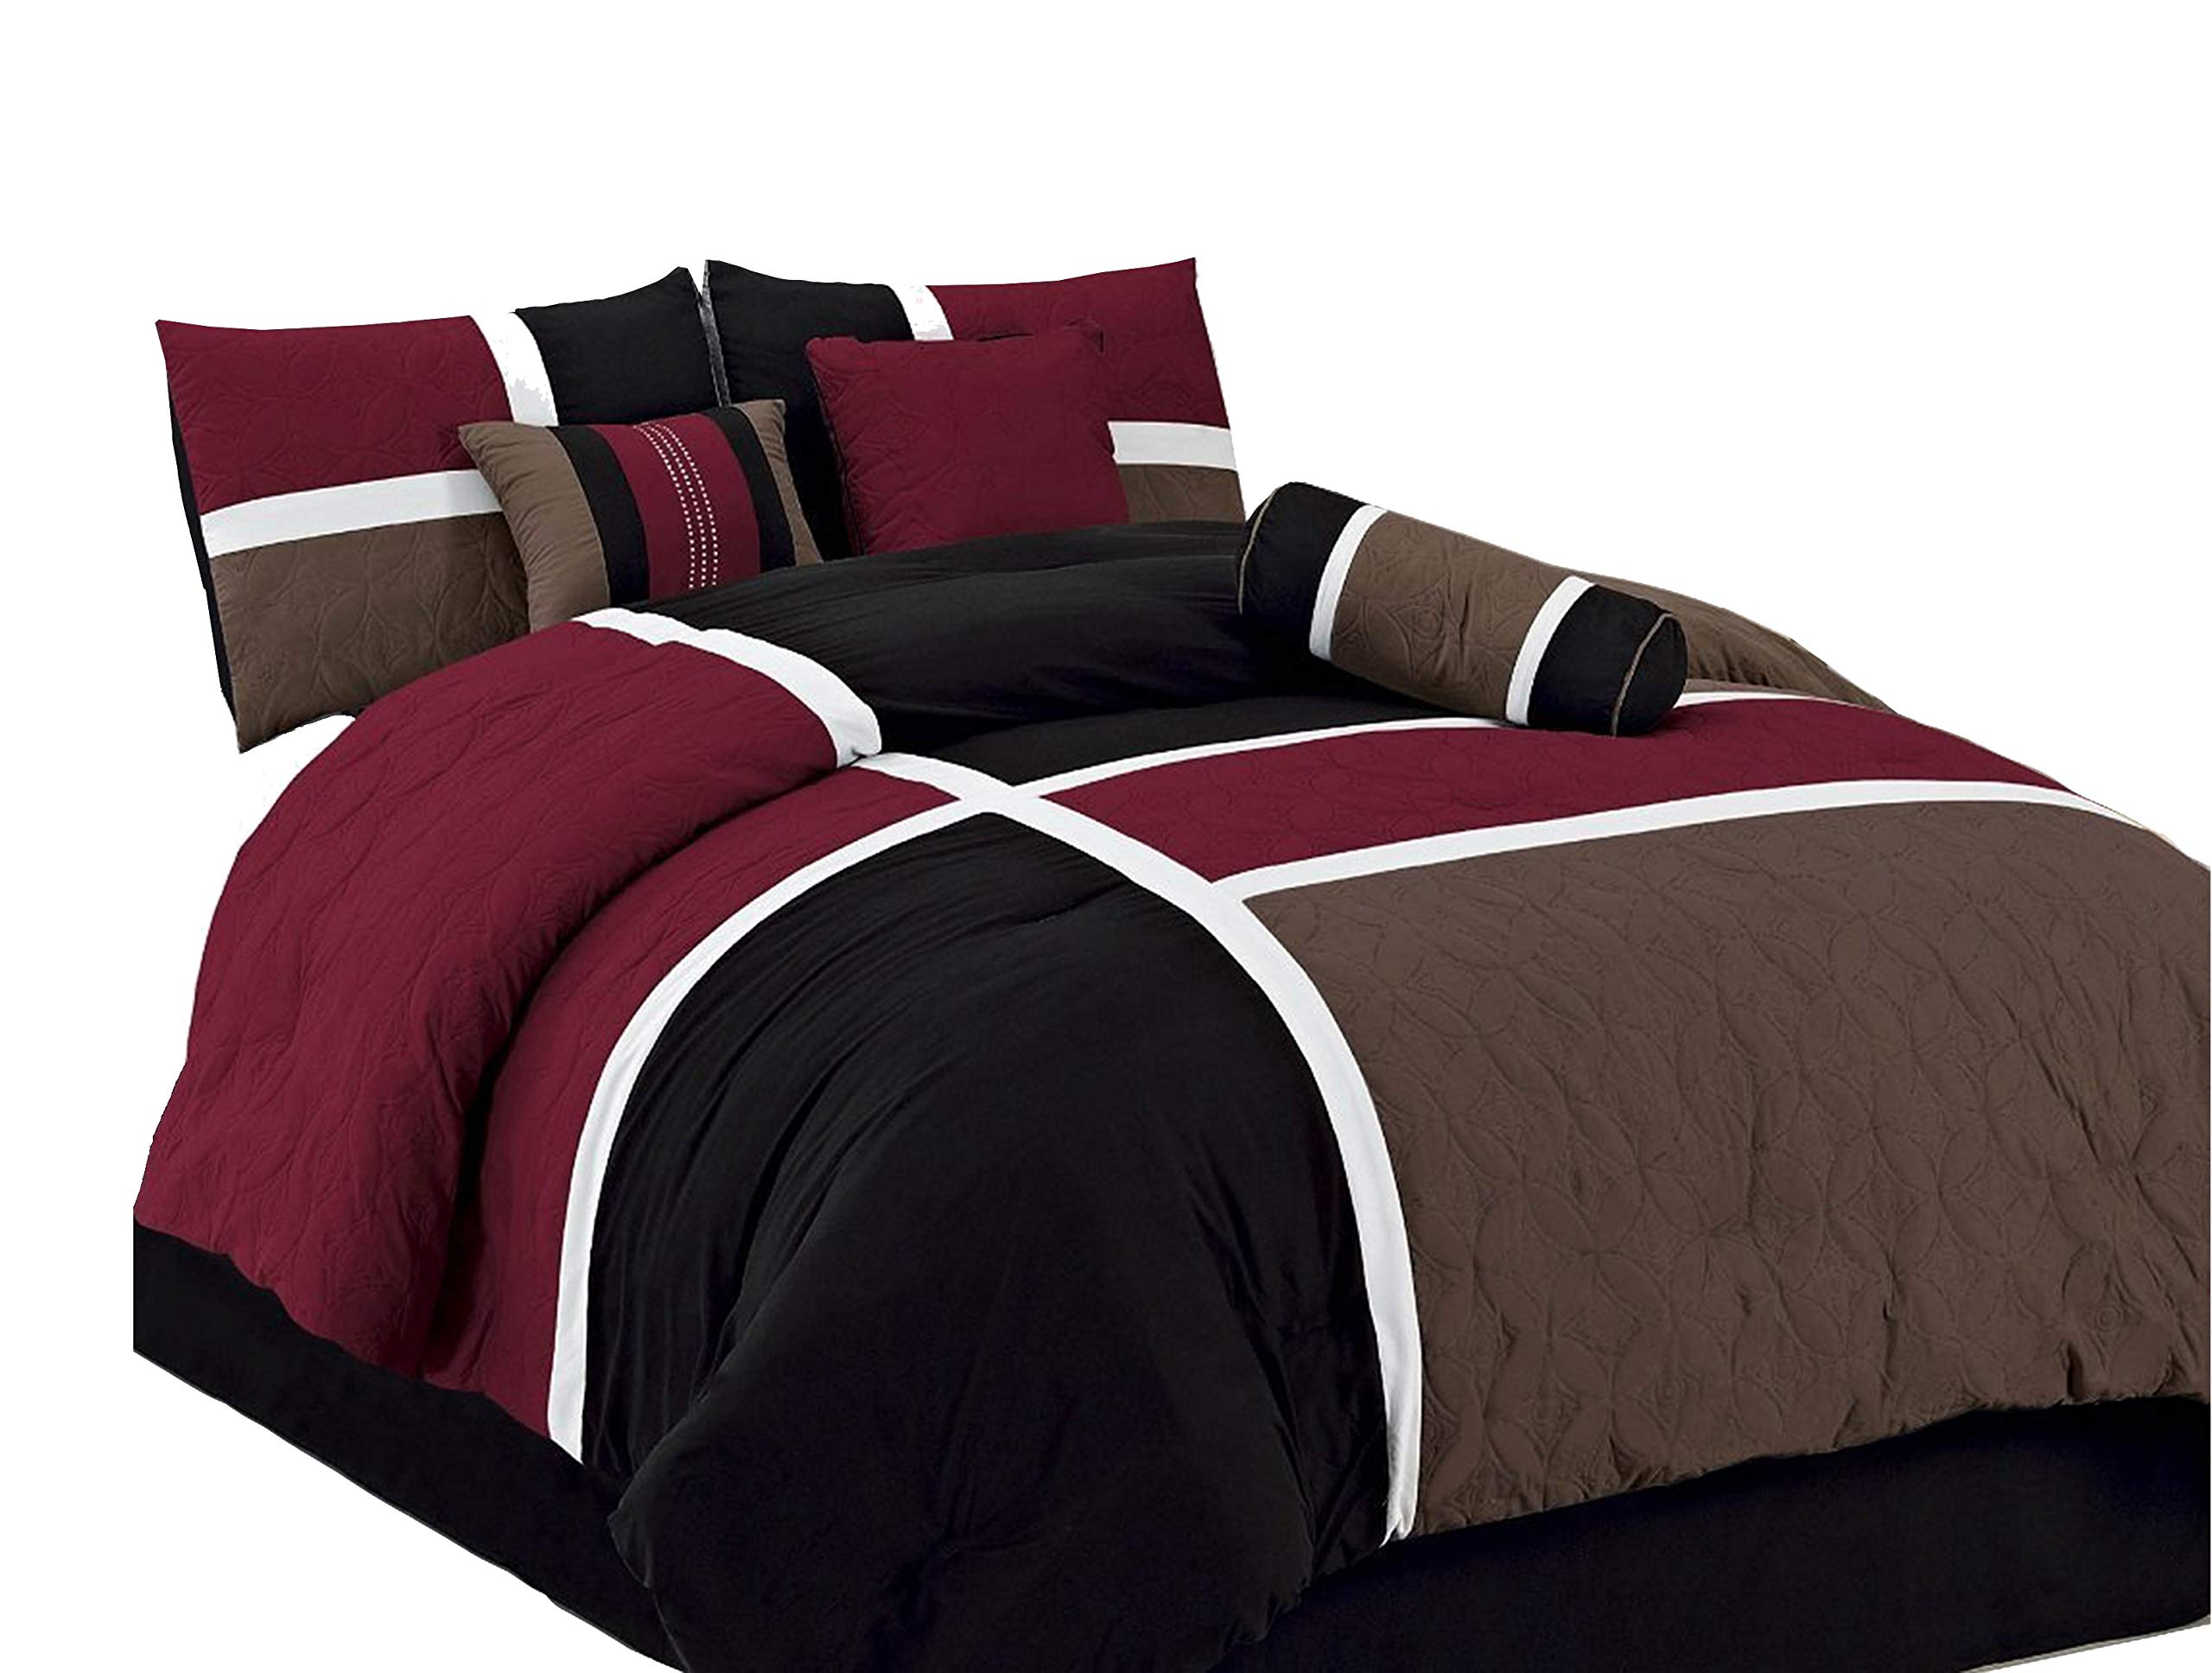 Chezmoi Collection 7-Piece Quilted Patchwork Comforter Set (Queen, Burgundy/Brown/Black)